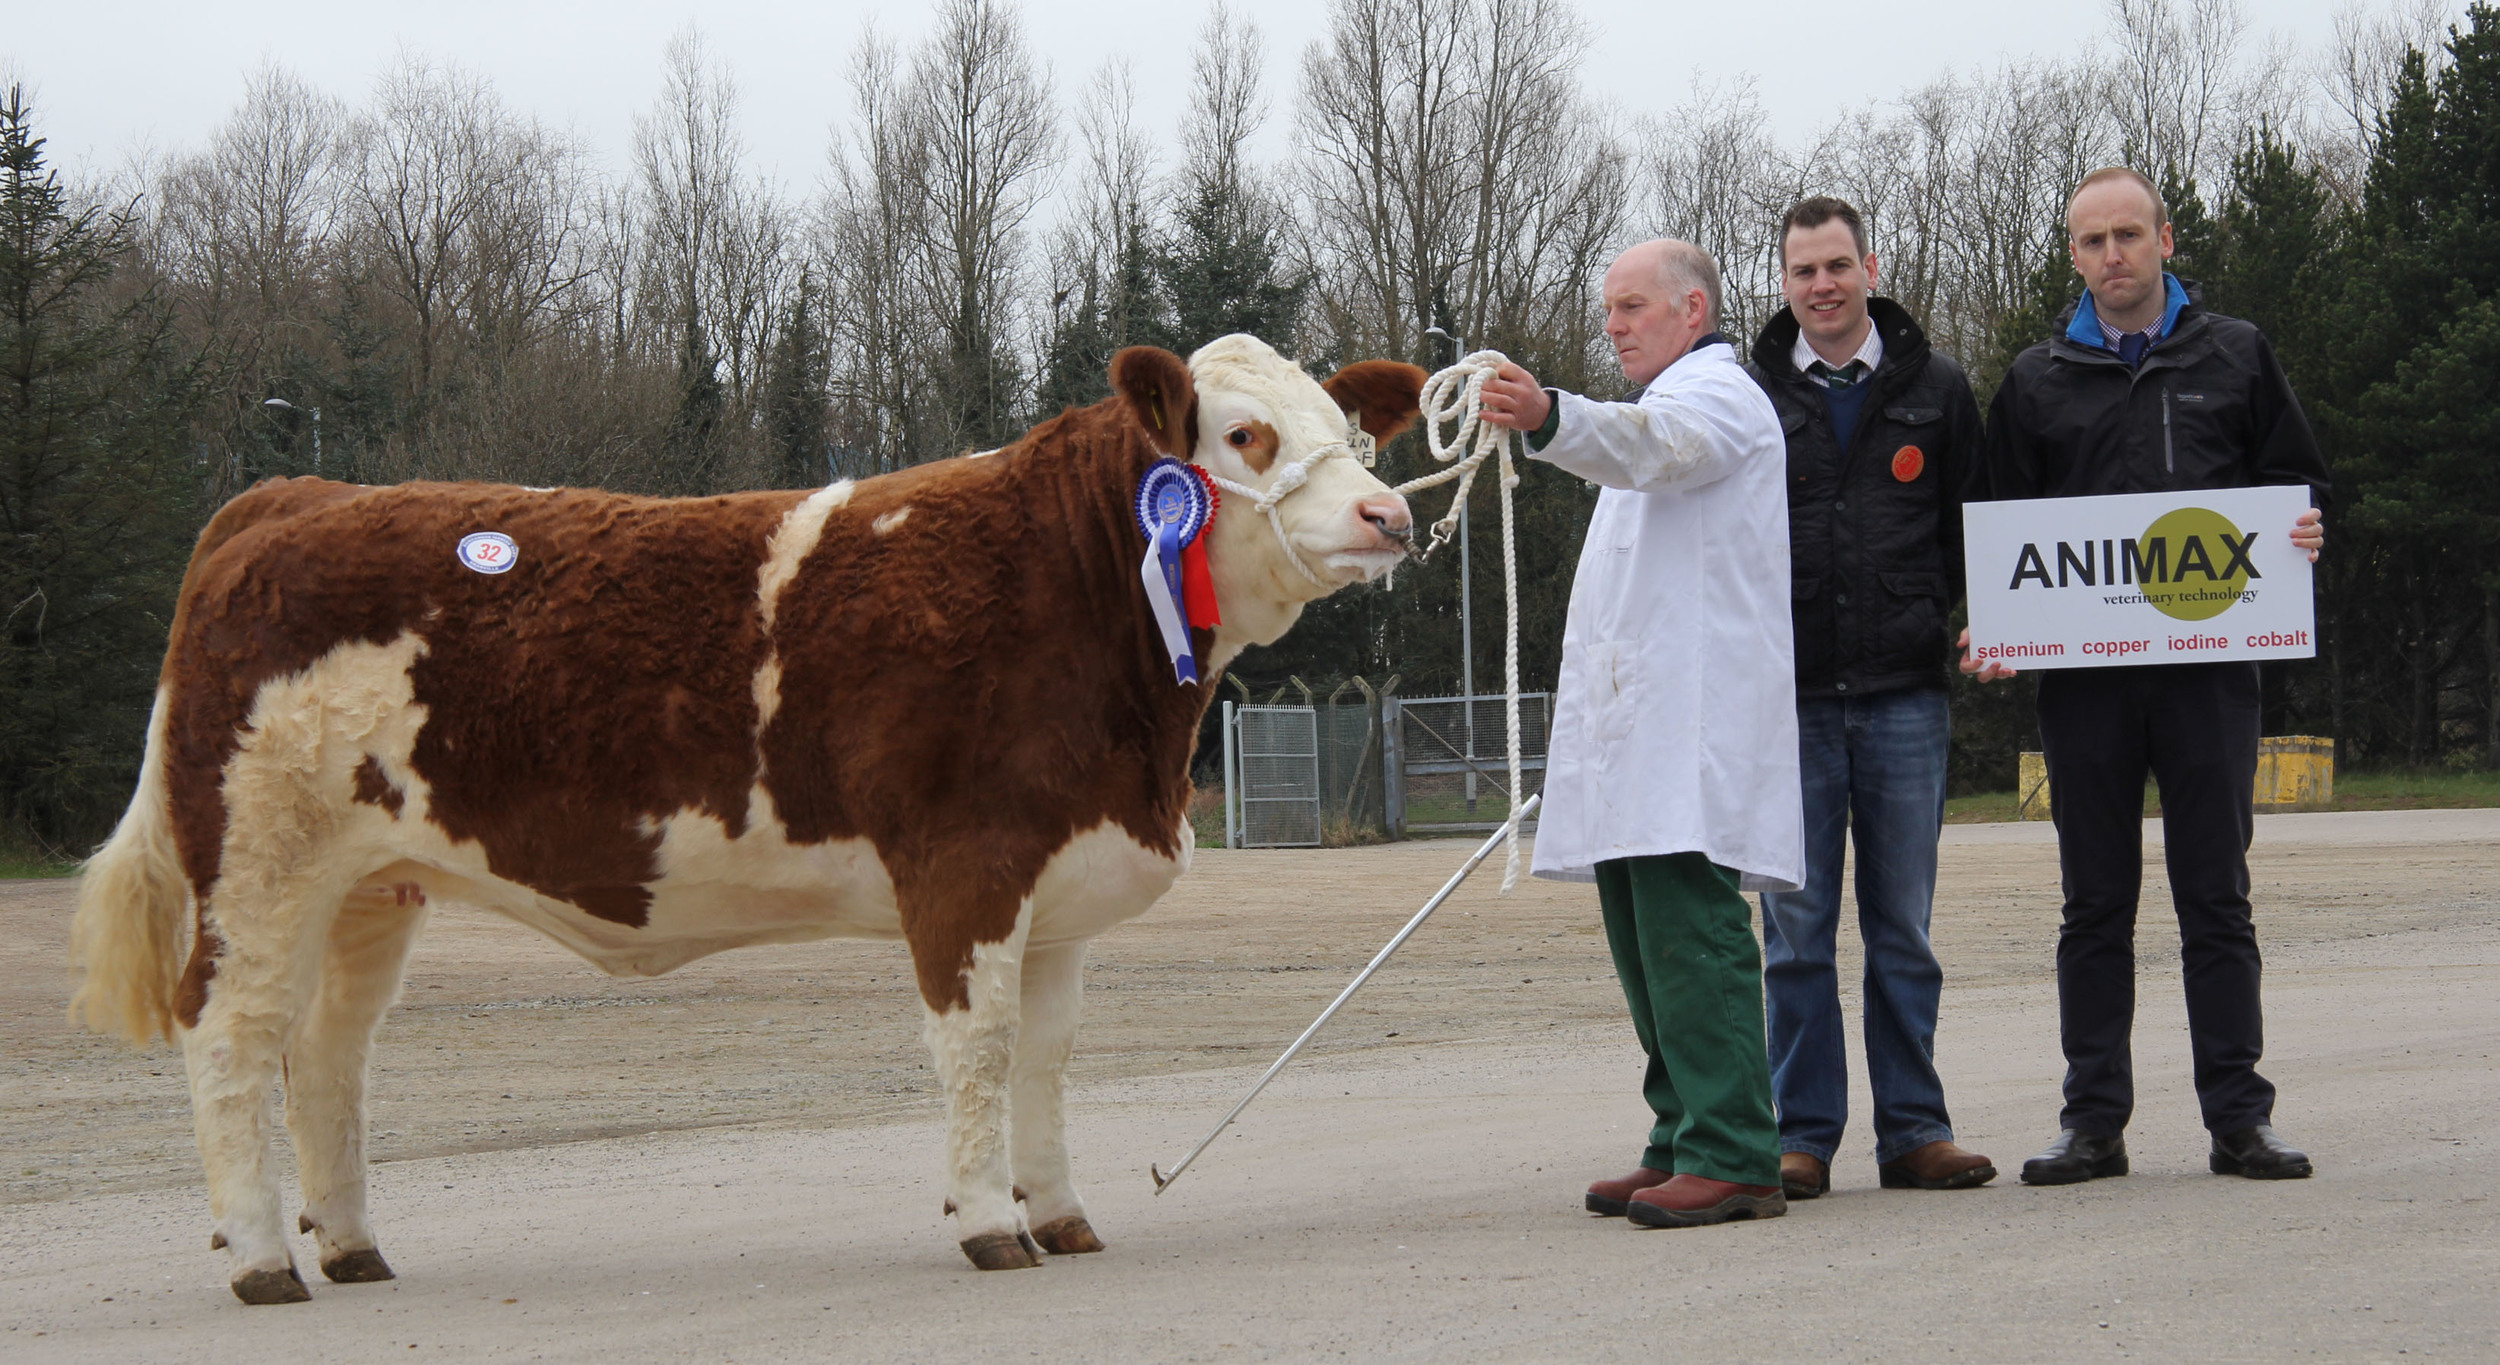 Norman Robson, Doagh, exhibited the reserve female champion Kilbride Farm Eunice 174F. Included are judge Shane McDonald, Tempo; and sponsor Neill Acheson, Animax.